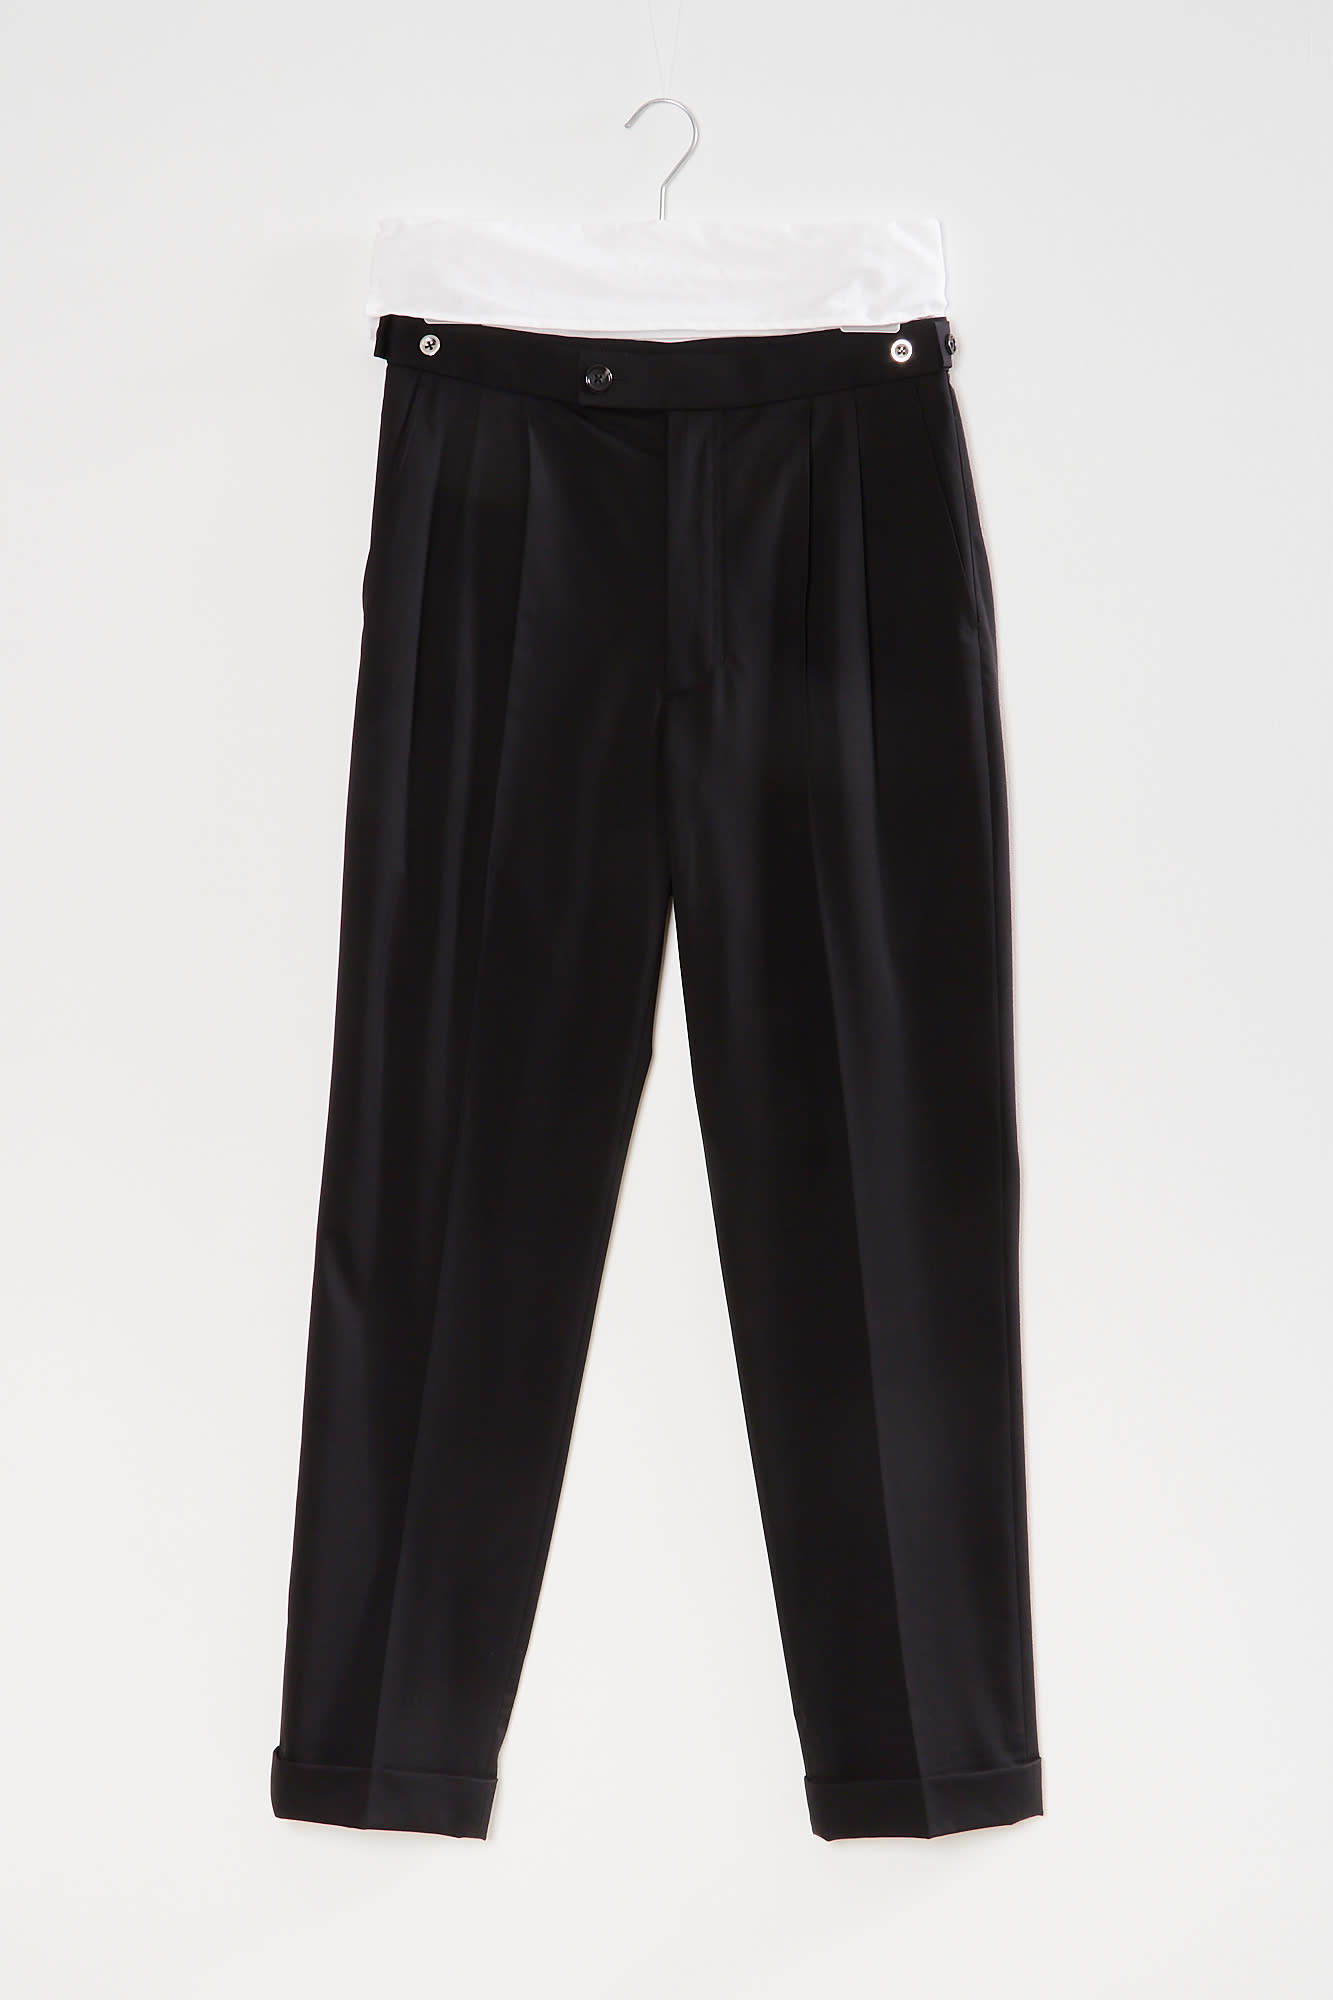 Helmut Lang pleated tapered pant